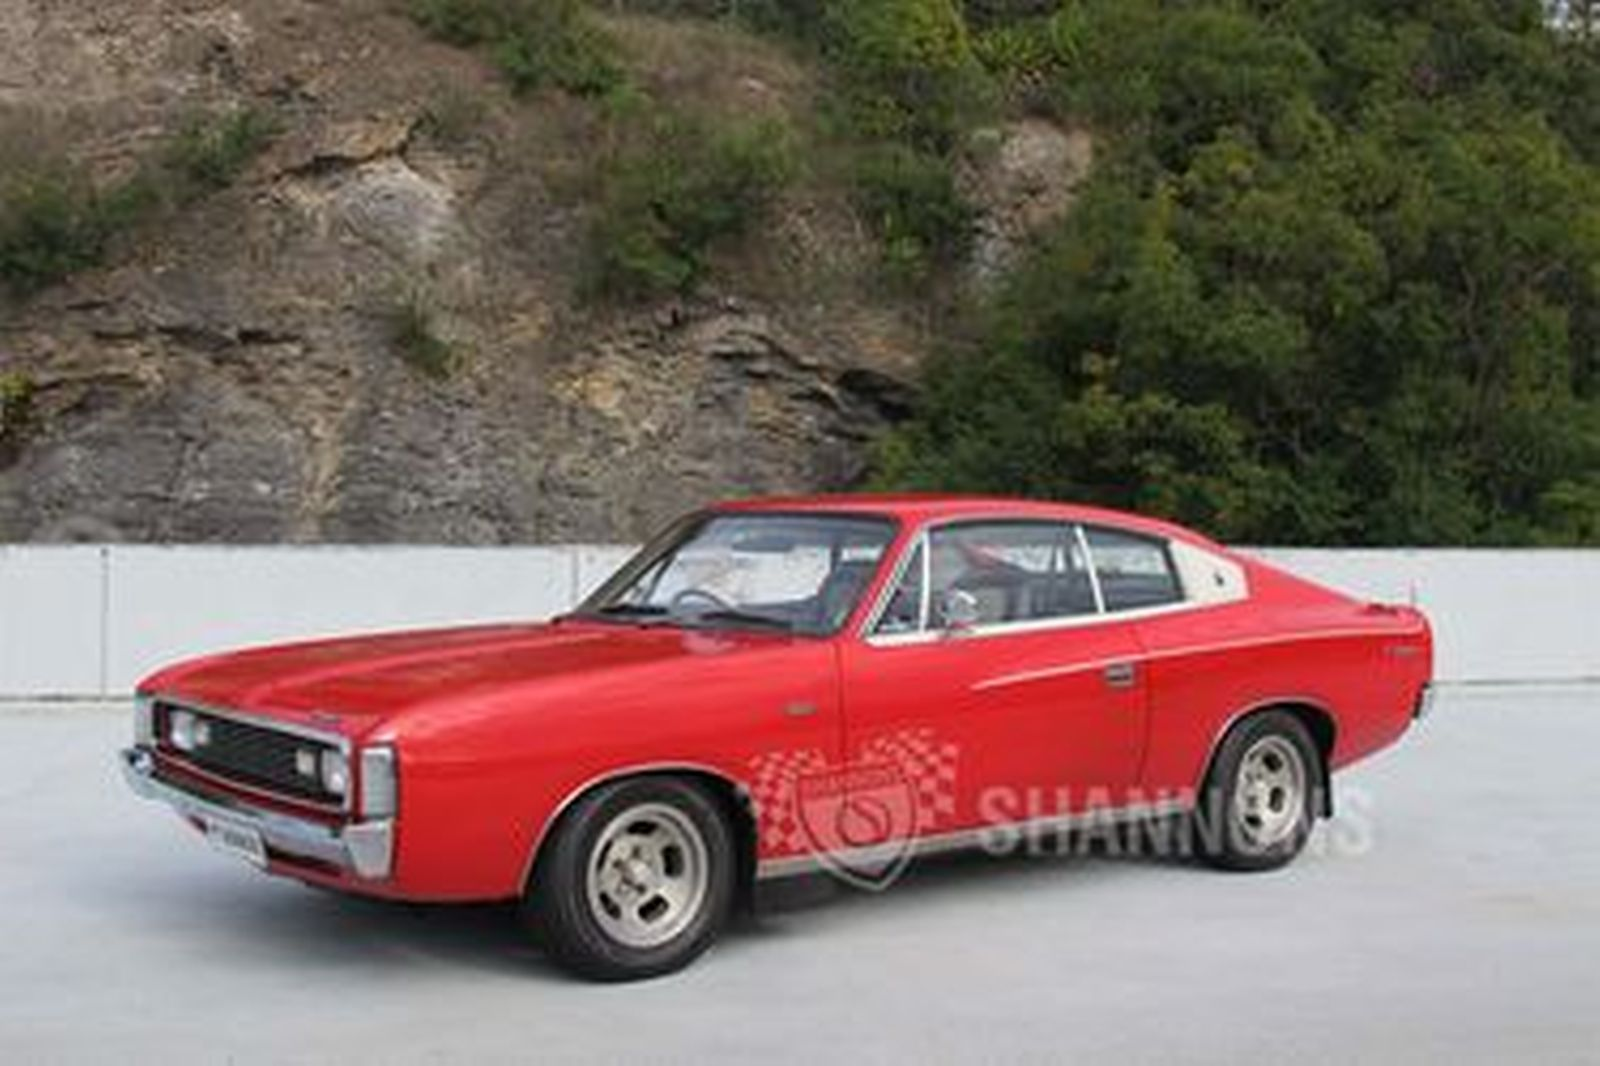 Chrysler VH Valiant Charger E55 770 Coupe